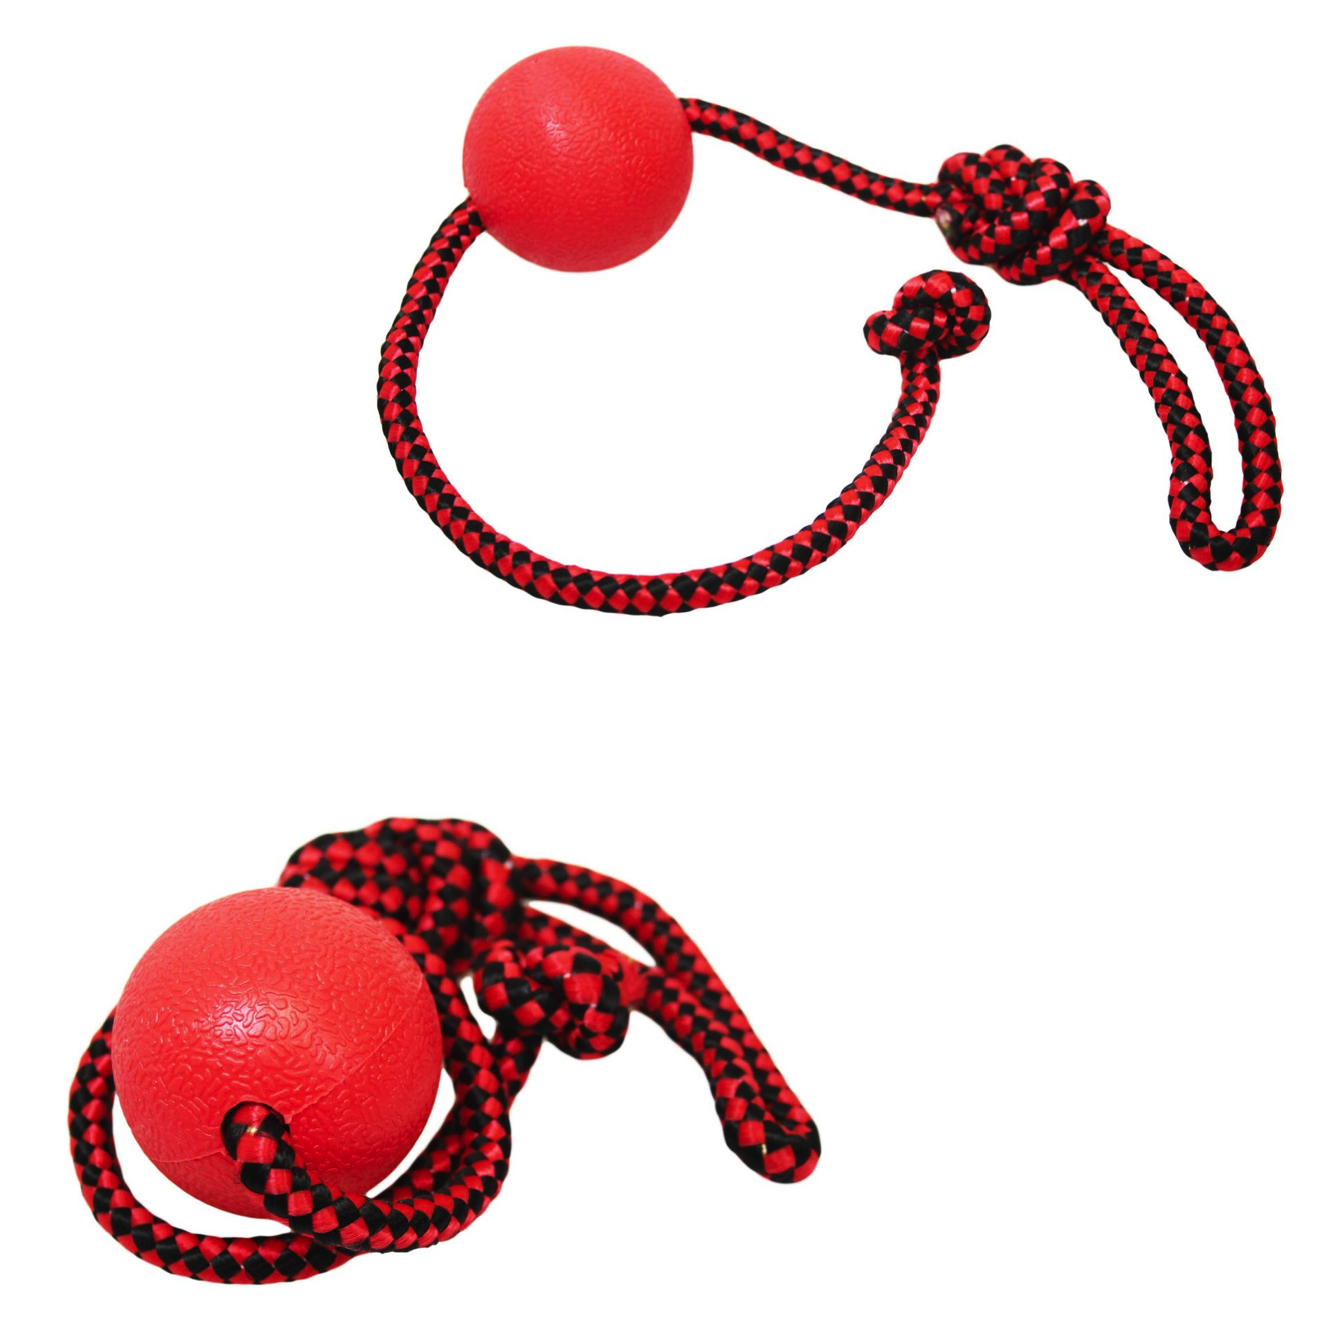 Pets Cats Dogs Fun Chewing Ball and Rope Indoor Outdoor Dog Toy 5cm Ball Rope 32